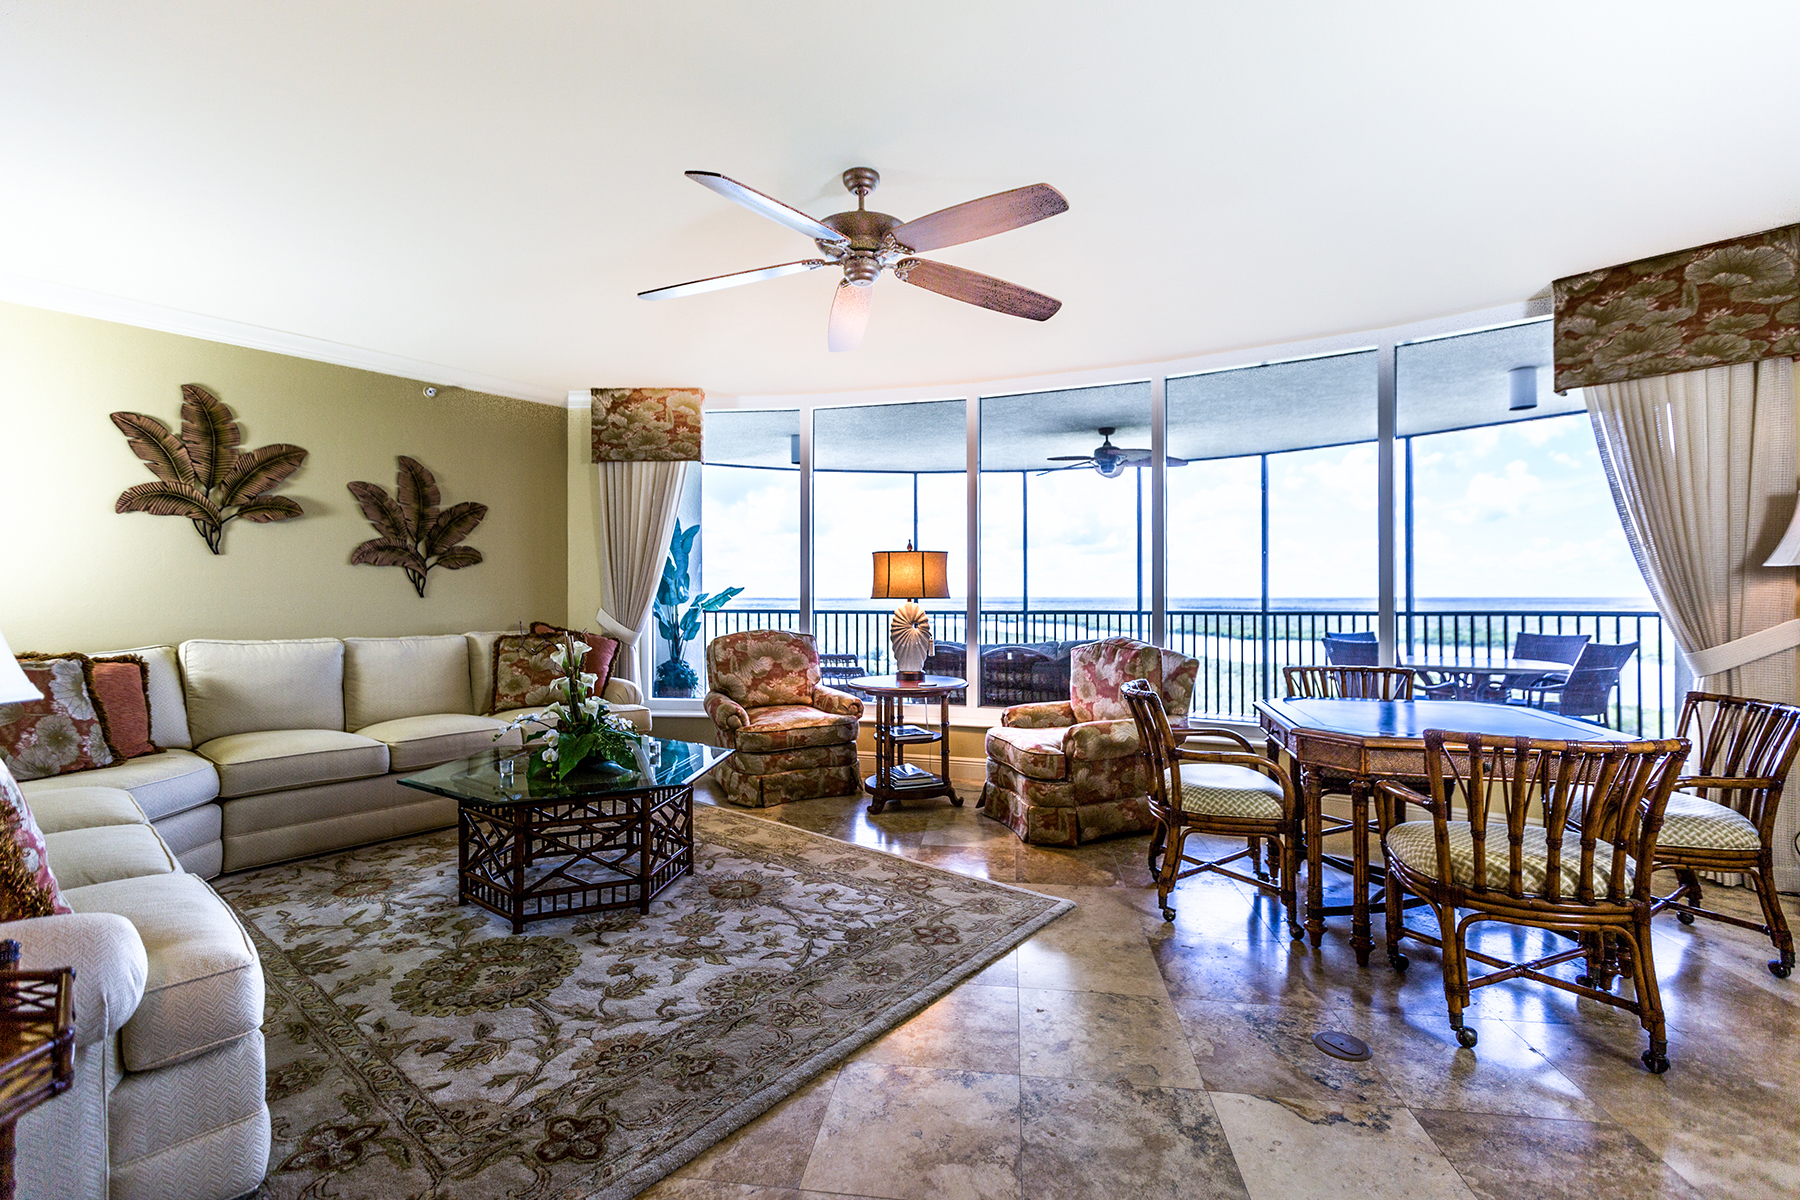 Condominium for Sale at HAMMOCK BAY - LESINA 1050 Borghese Ln 1203 Naples, Florida, 34114 United States